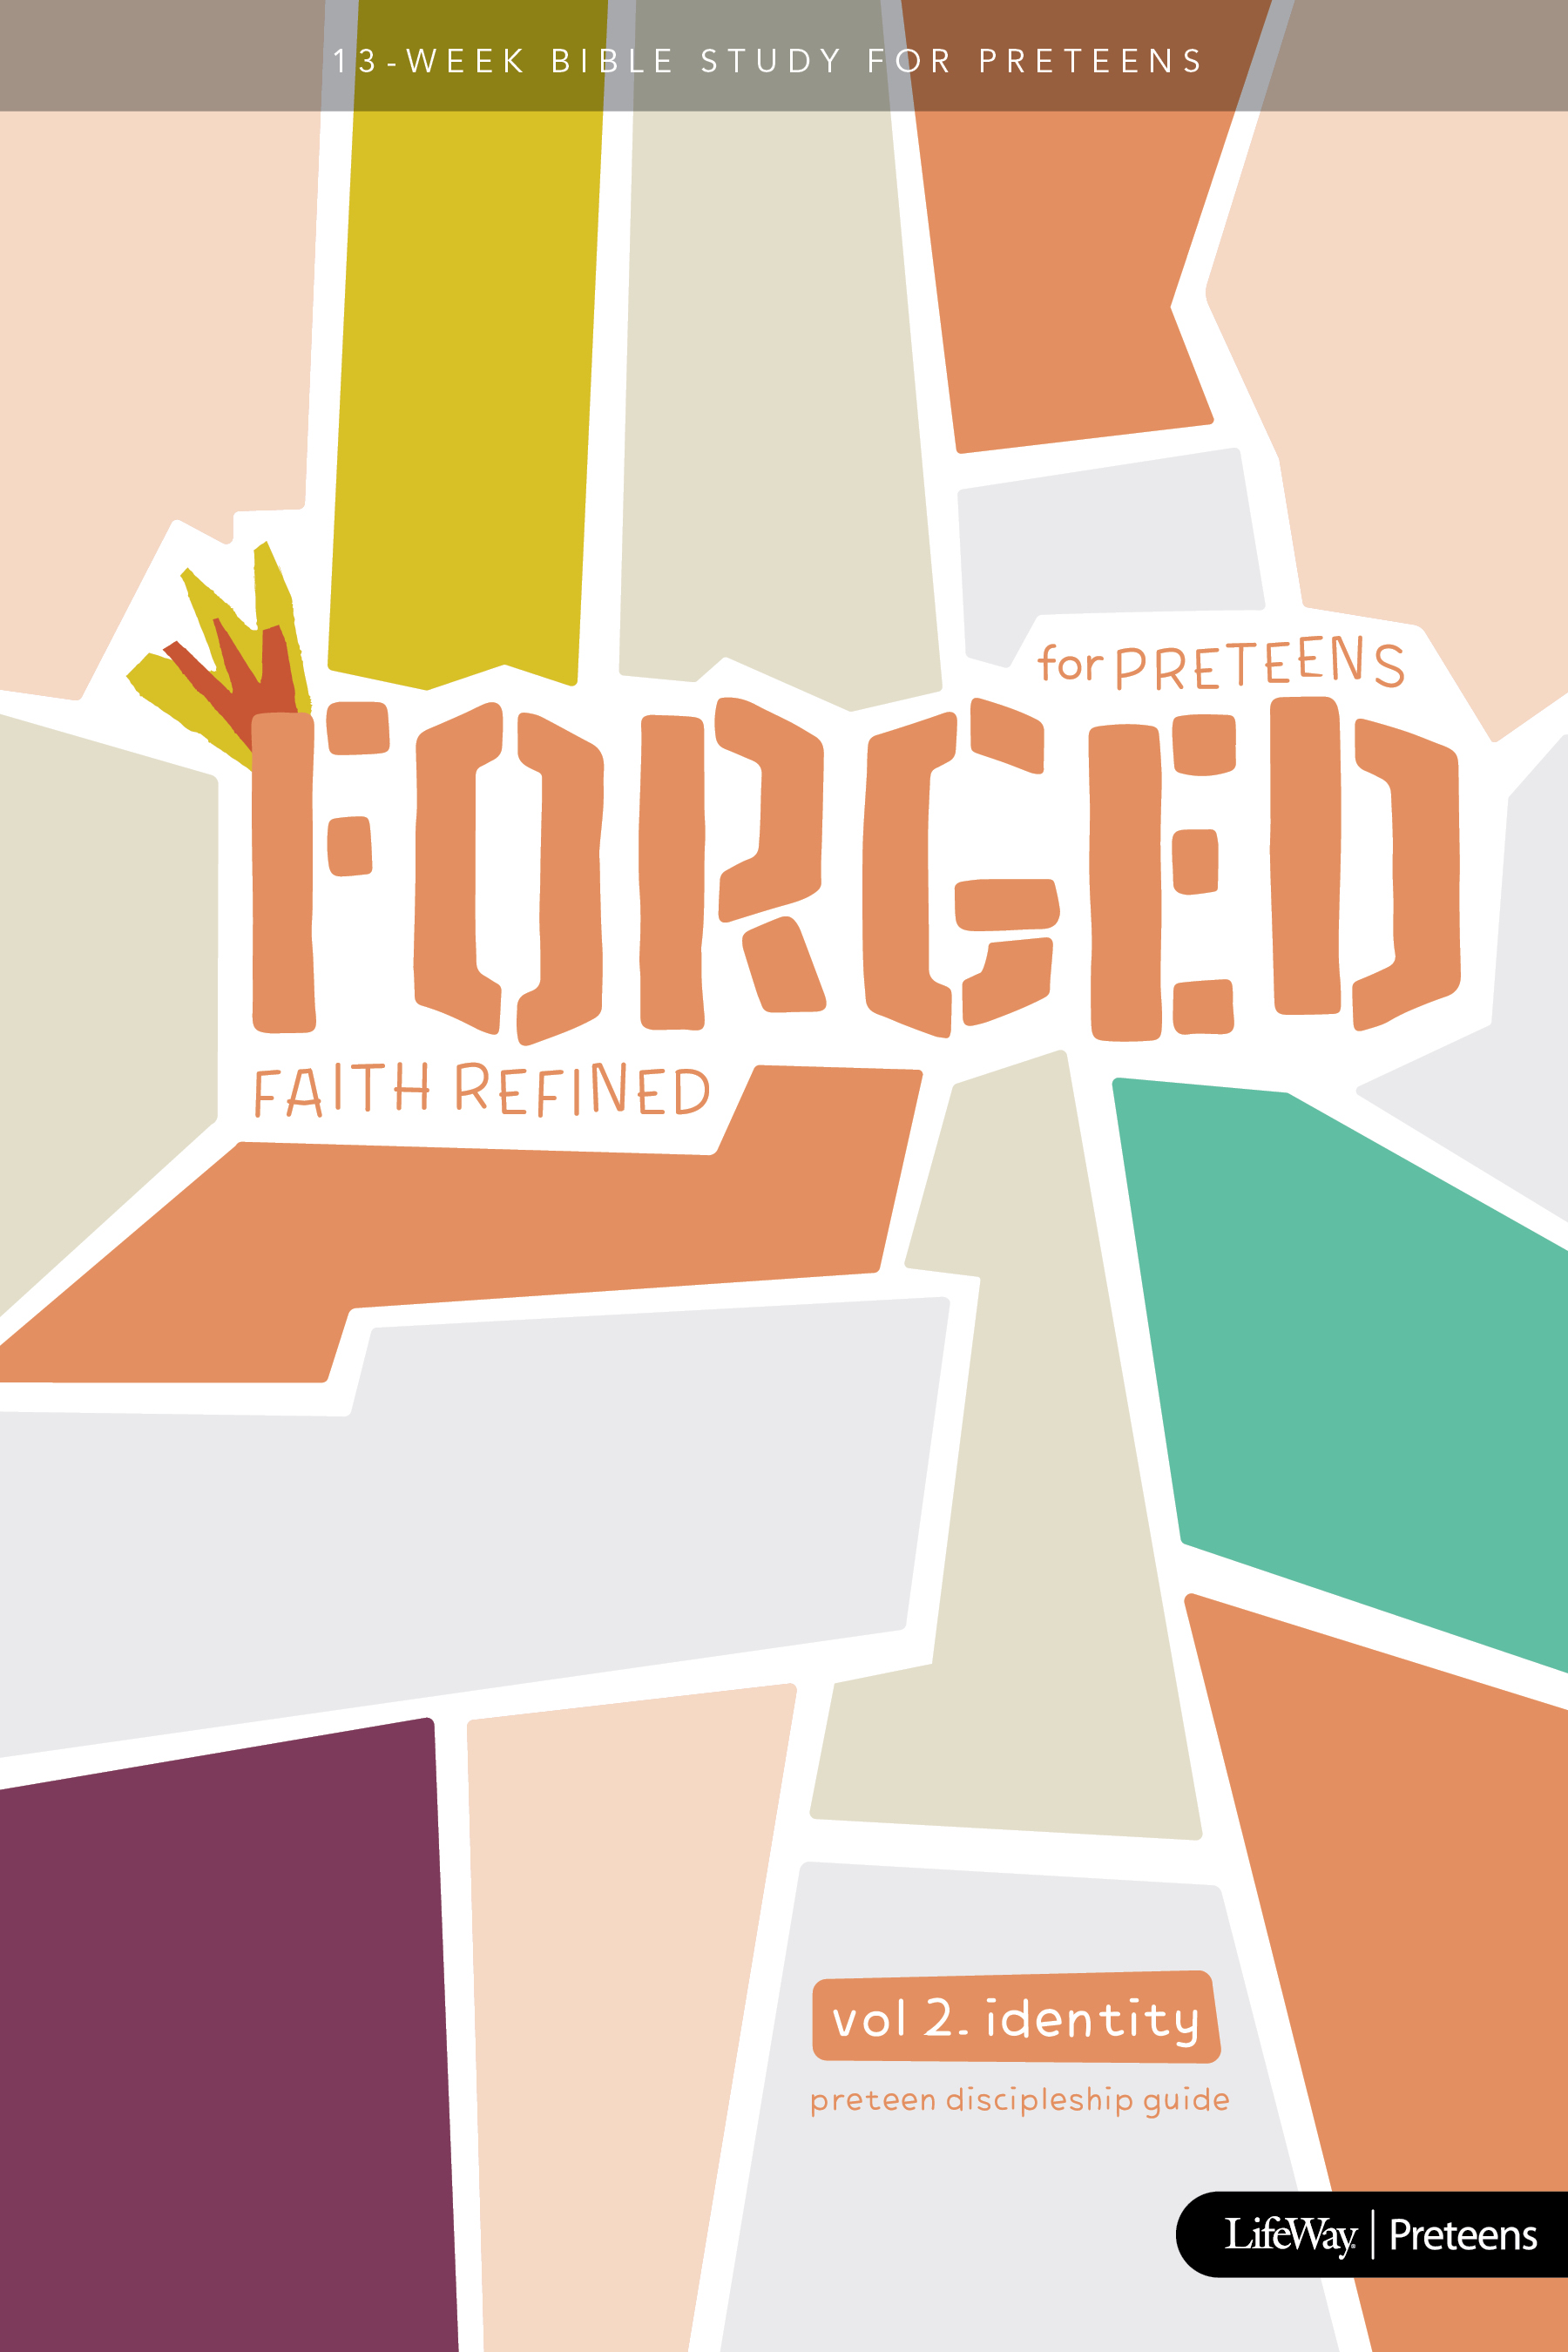 Forged: Faith Refined, Volume 2 Preteen Discipleship Guide